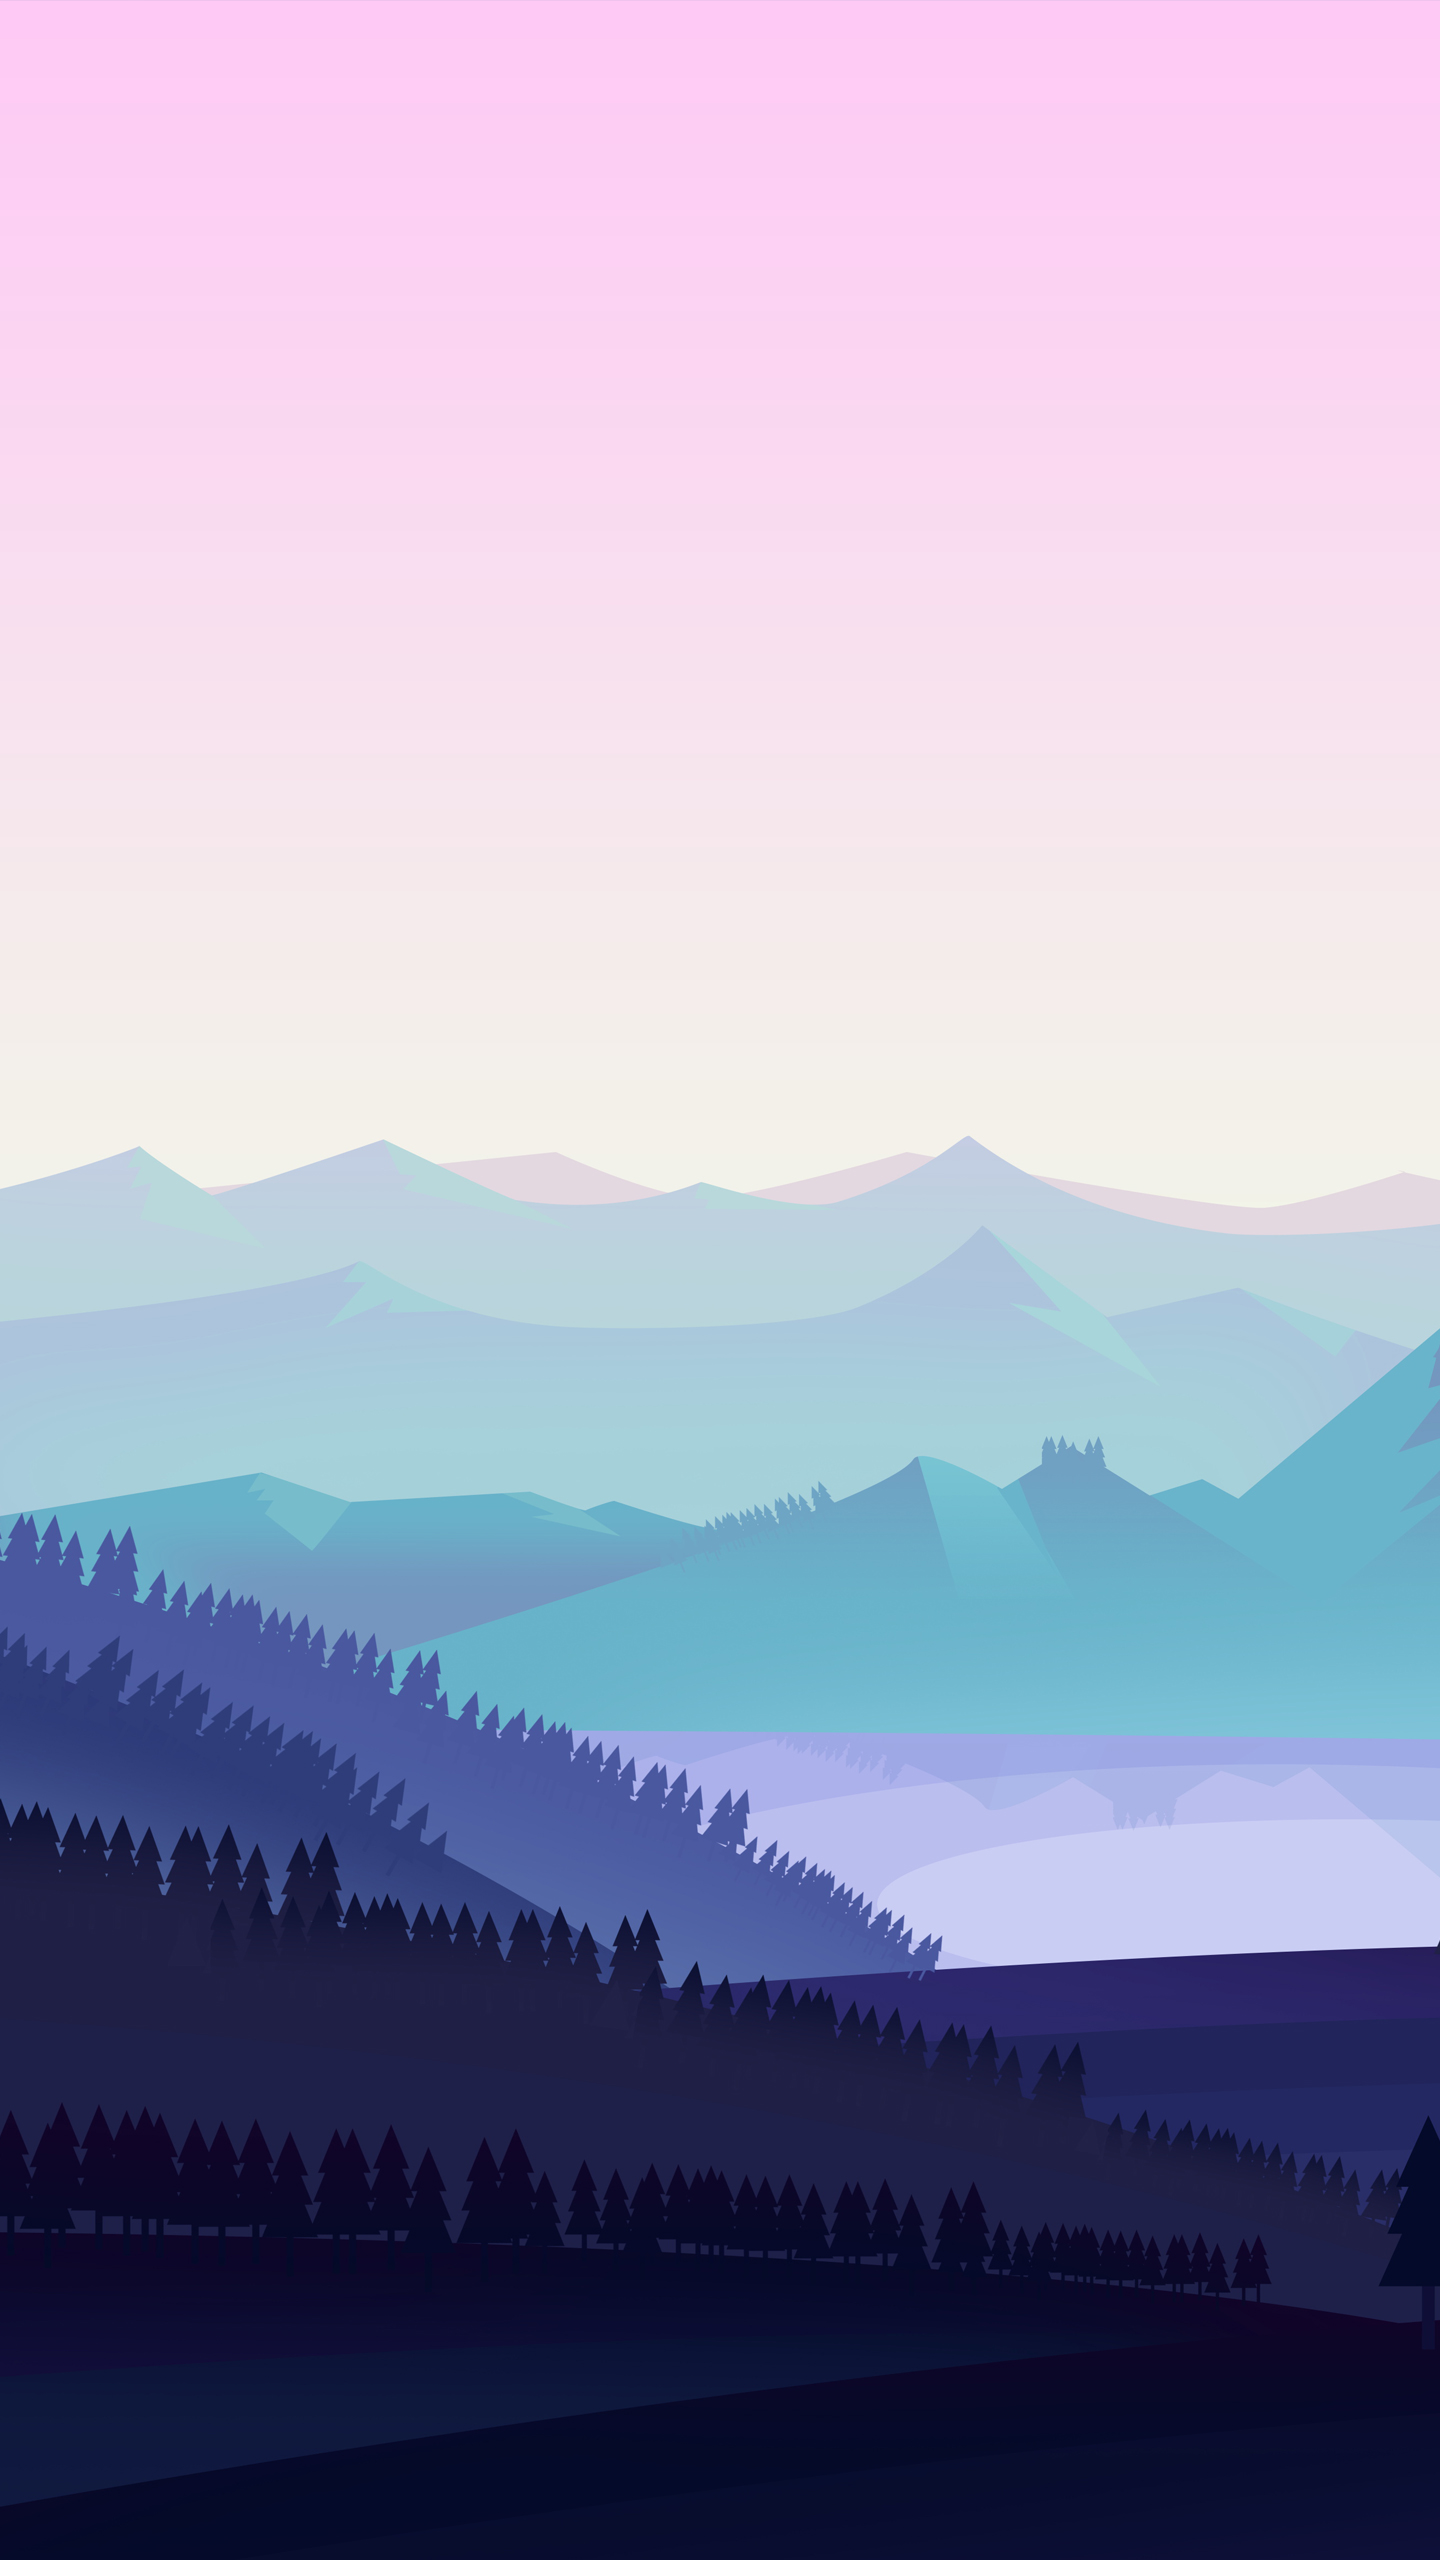 pink and blue anime mountains wallpaper